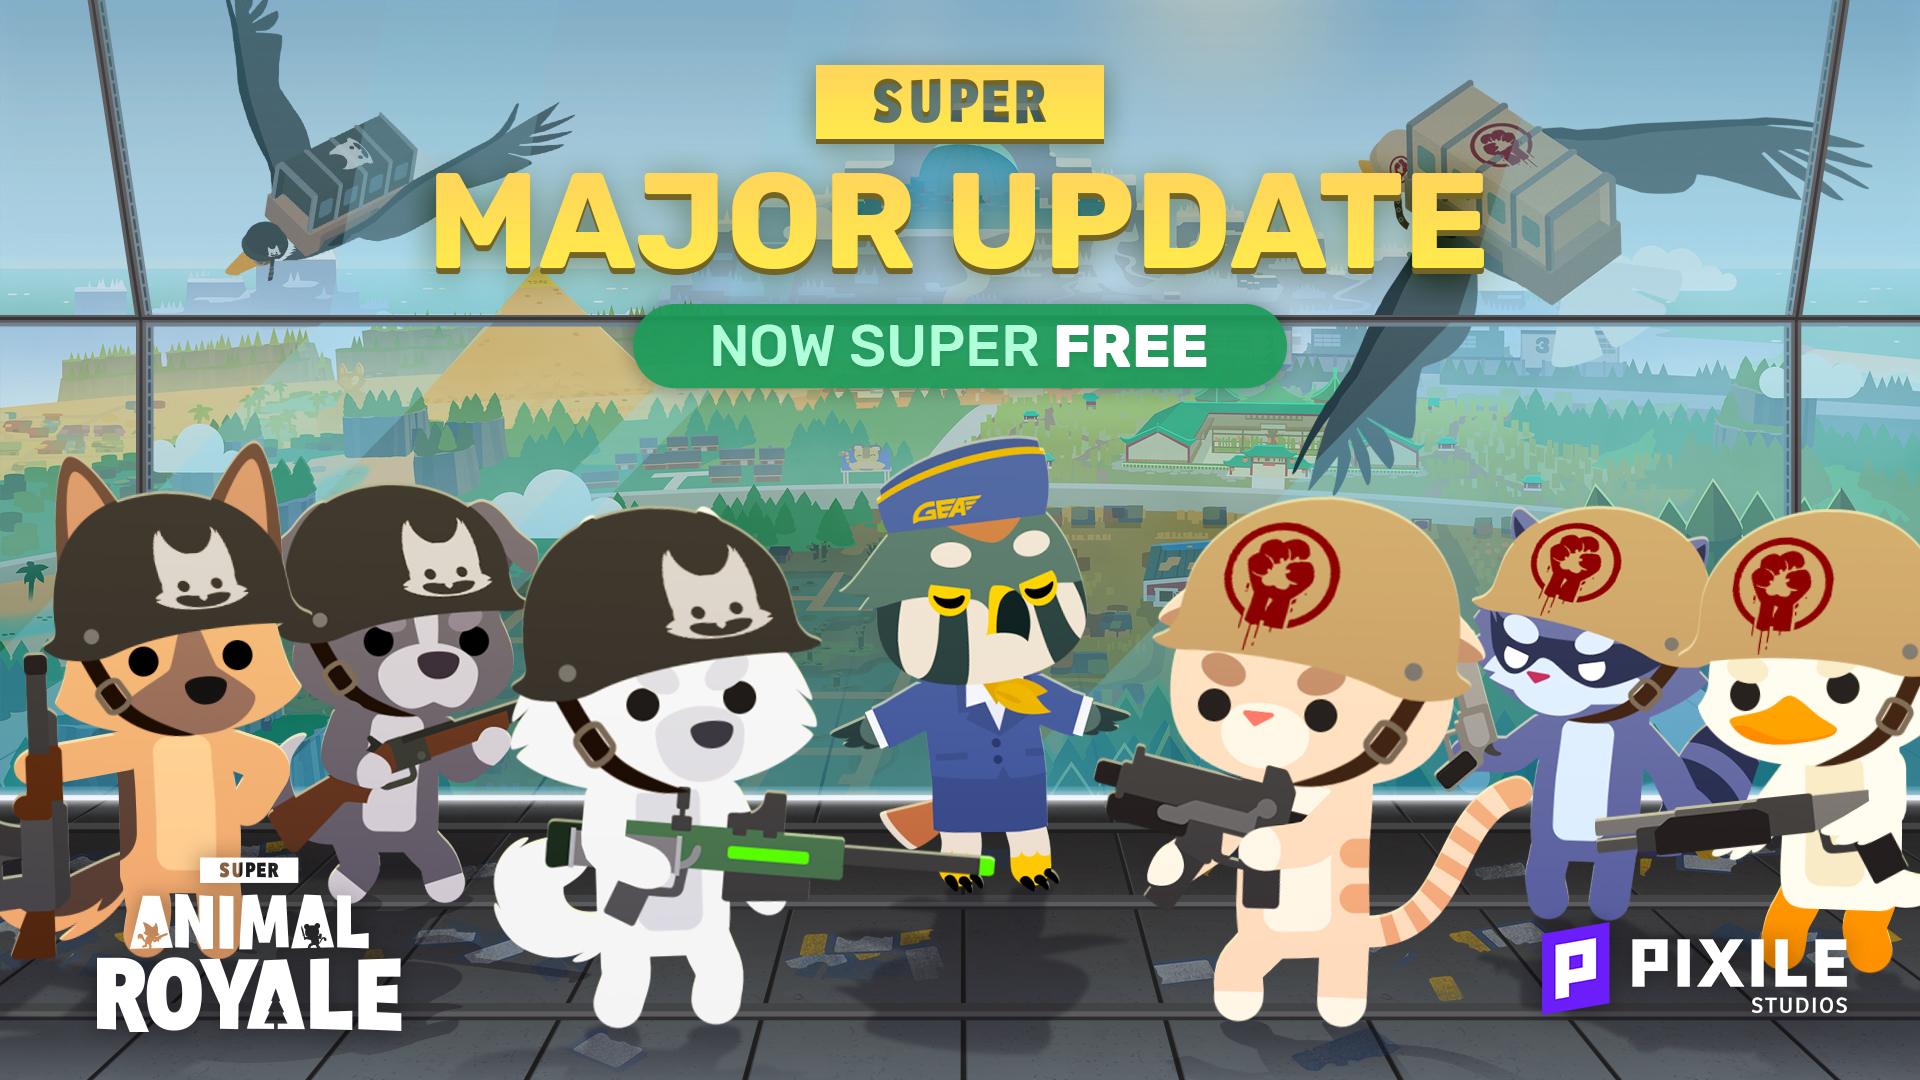 The Super Major Update is Here